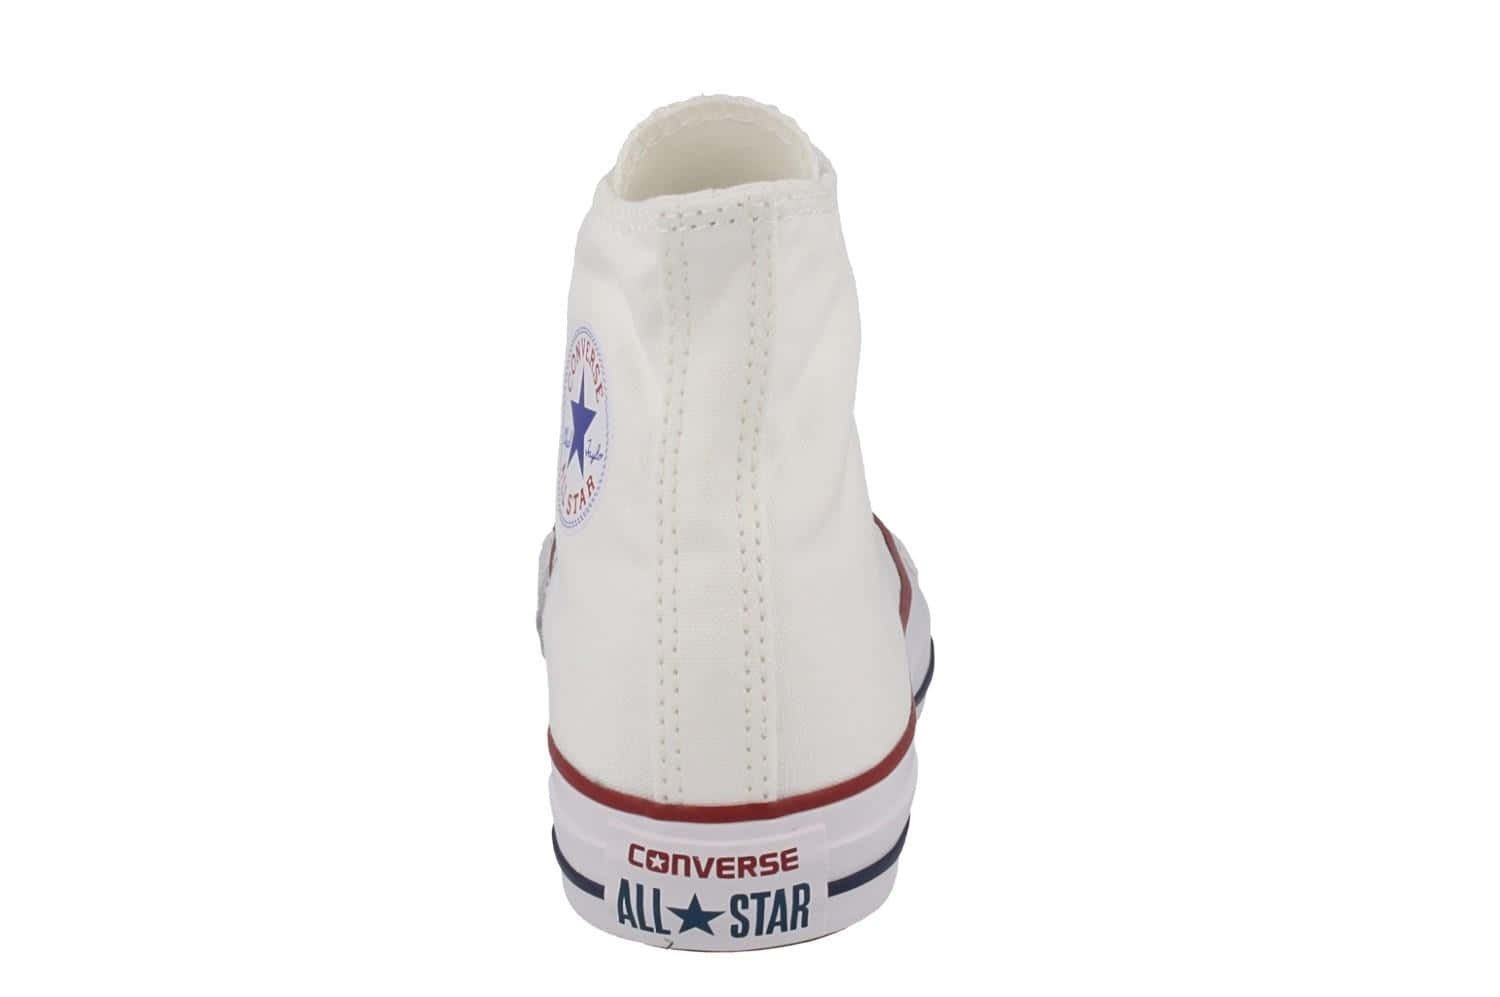 Converse Unisex Chuck Taylor All Star Hi Oxfords Optical White 6.5 D(M) US by Converse (Image #8)